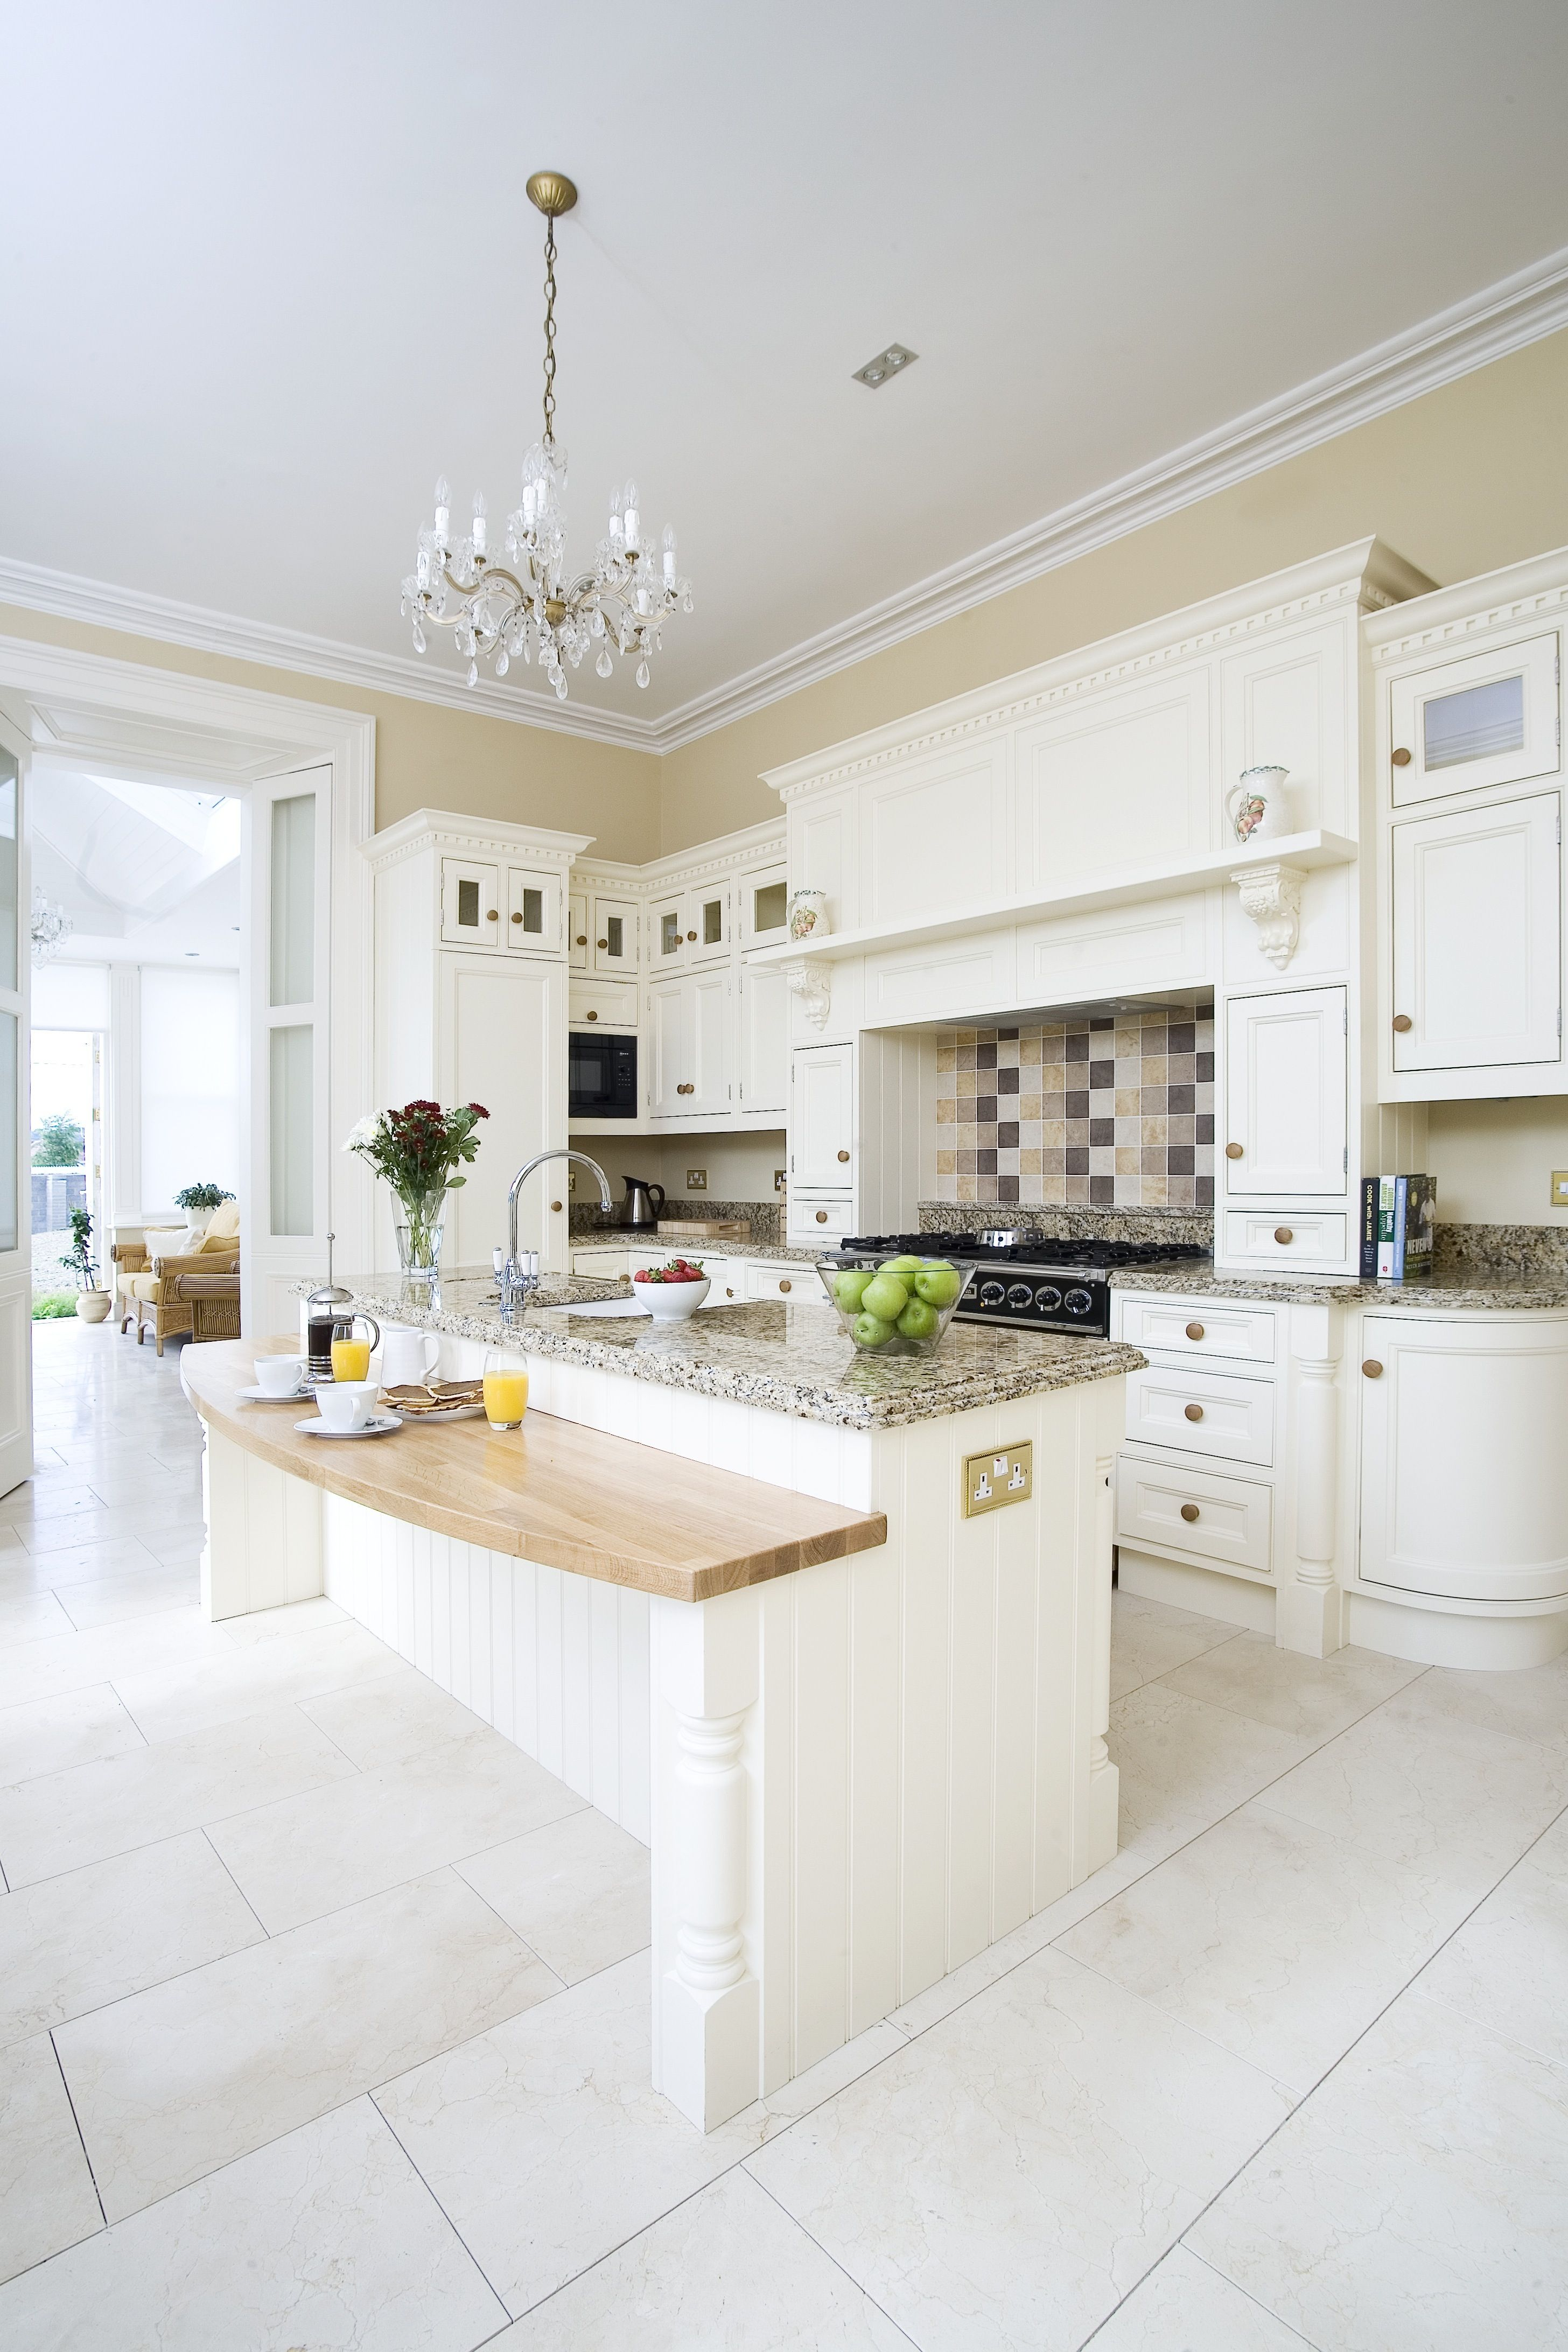 Best Cream Hand Painted Kitchen Fits Perfectly In This Period 400 x 300